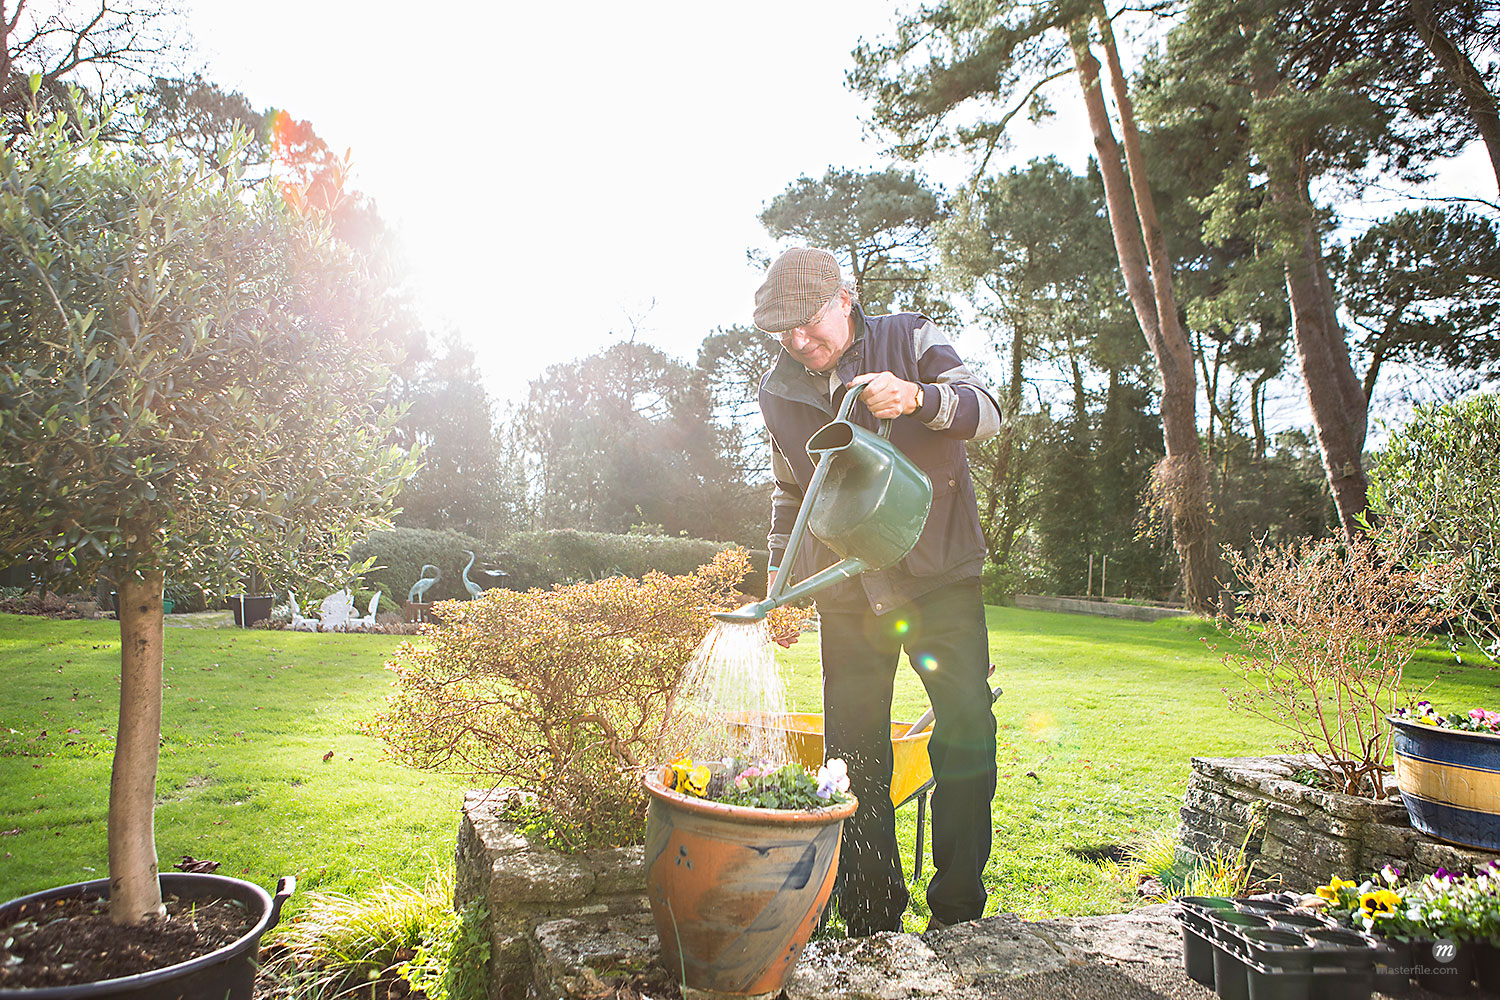 Senior man watering flowers in garden, Bournemouth, UK  © Masterfile